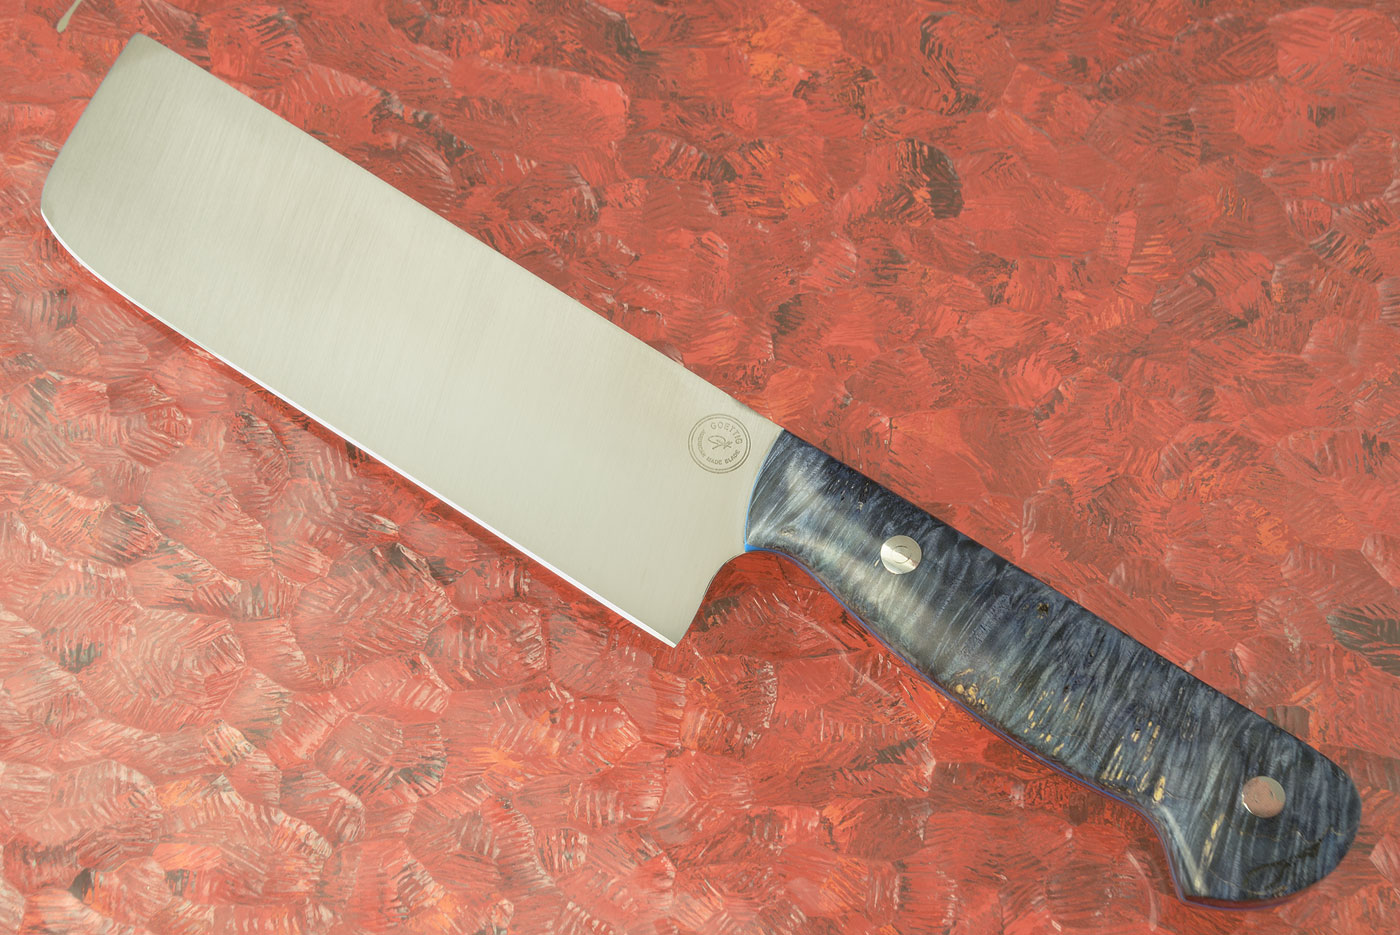 Chef's Knife - Nakiri (6-1/3 in.) with Blue Box Elder Burl